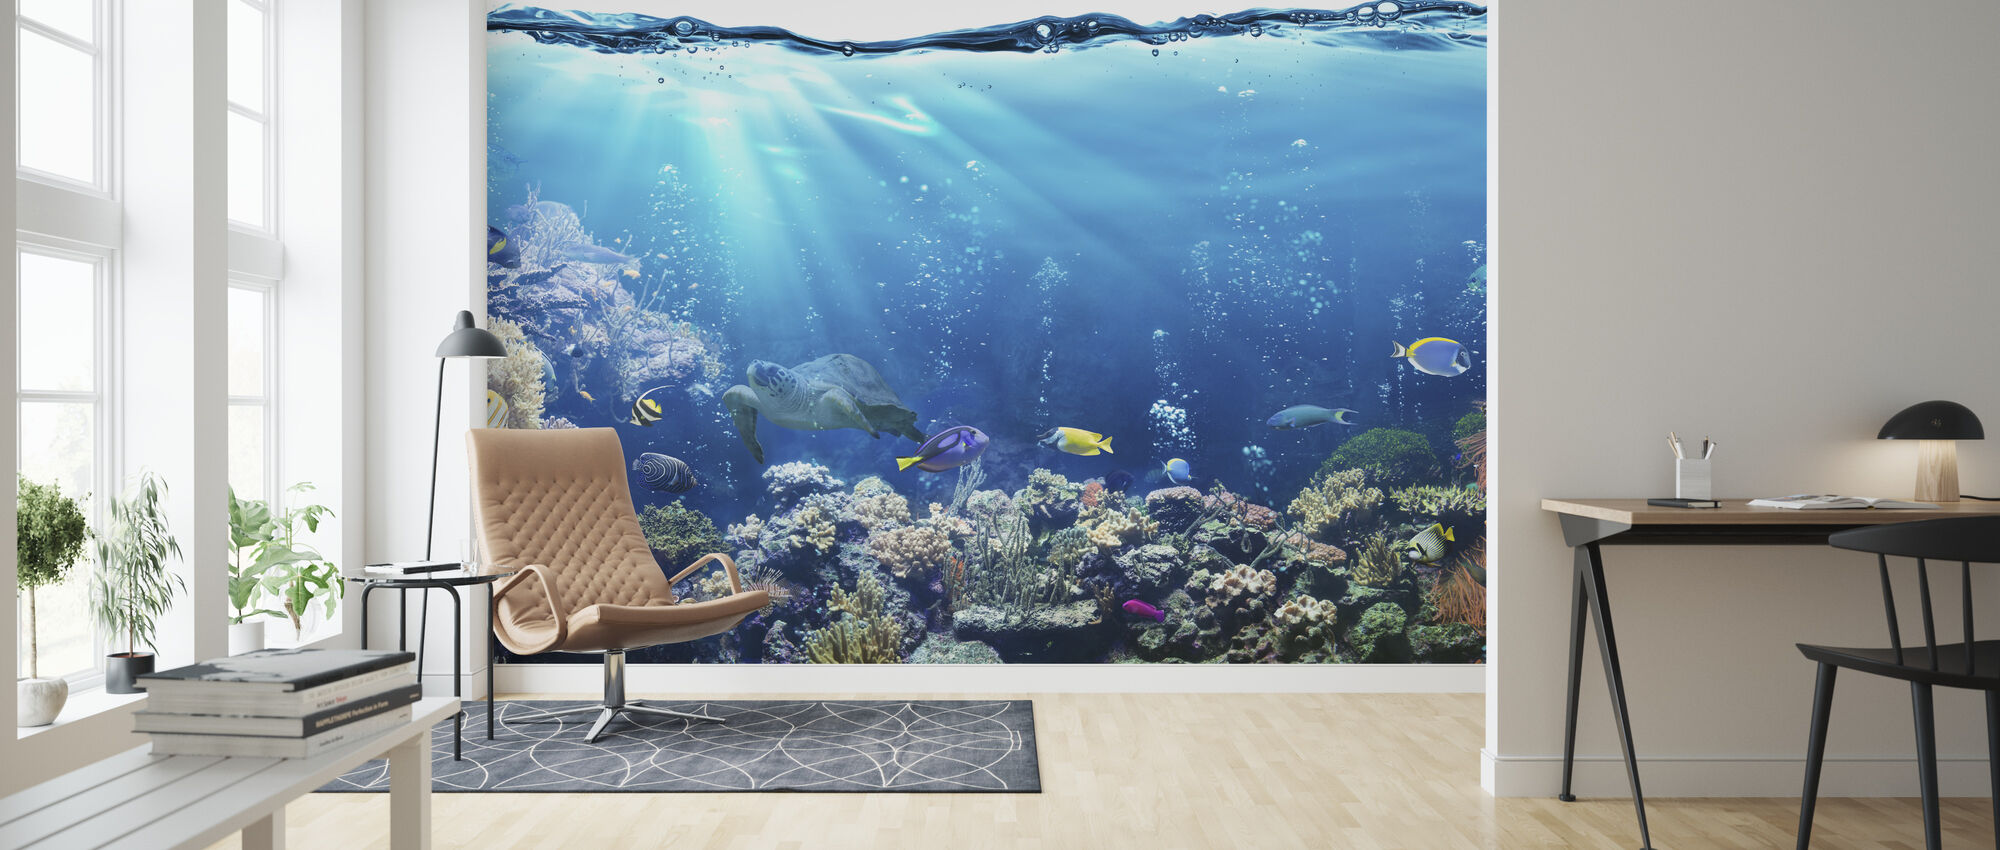 Underwater Scene - Wallpaper - Living Room